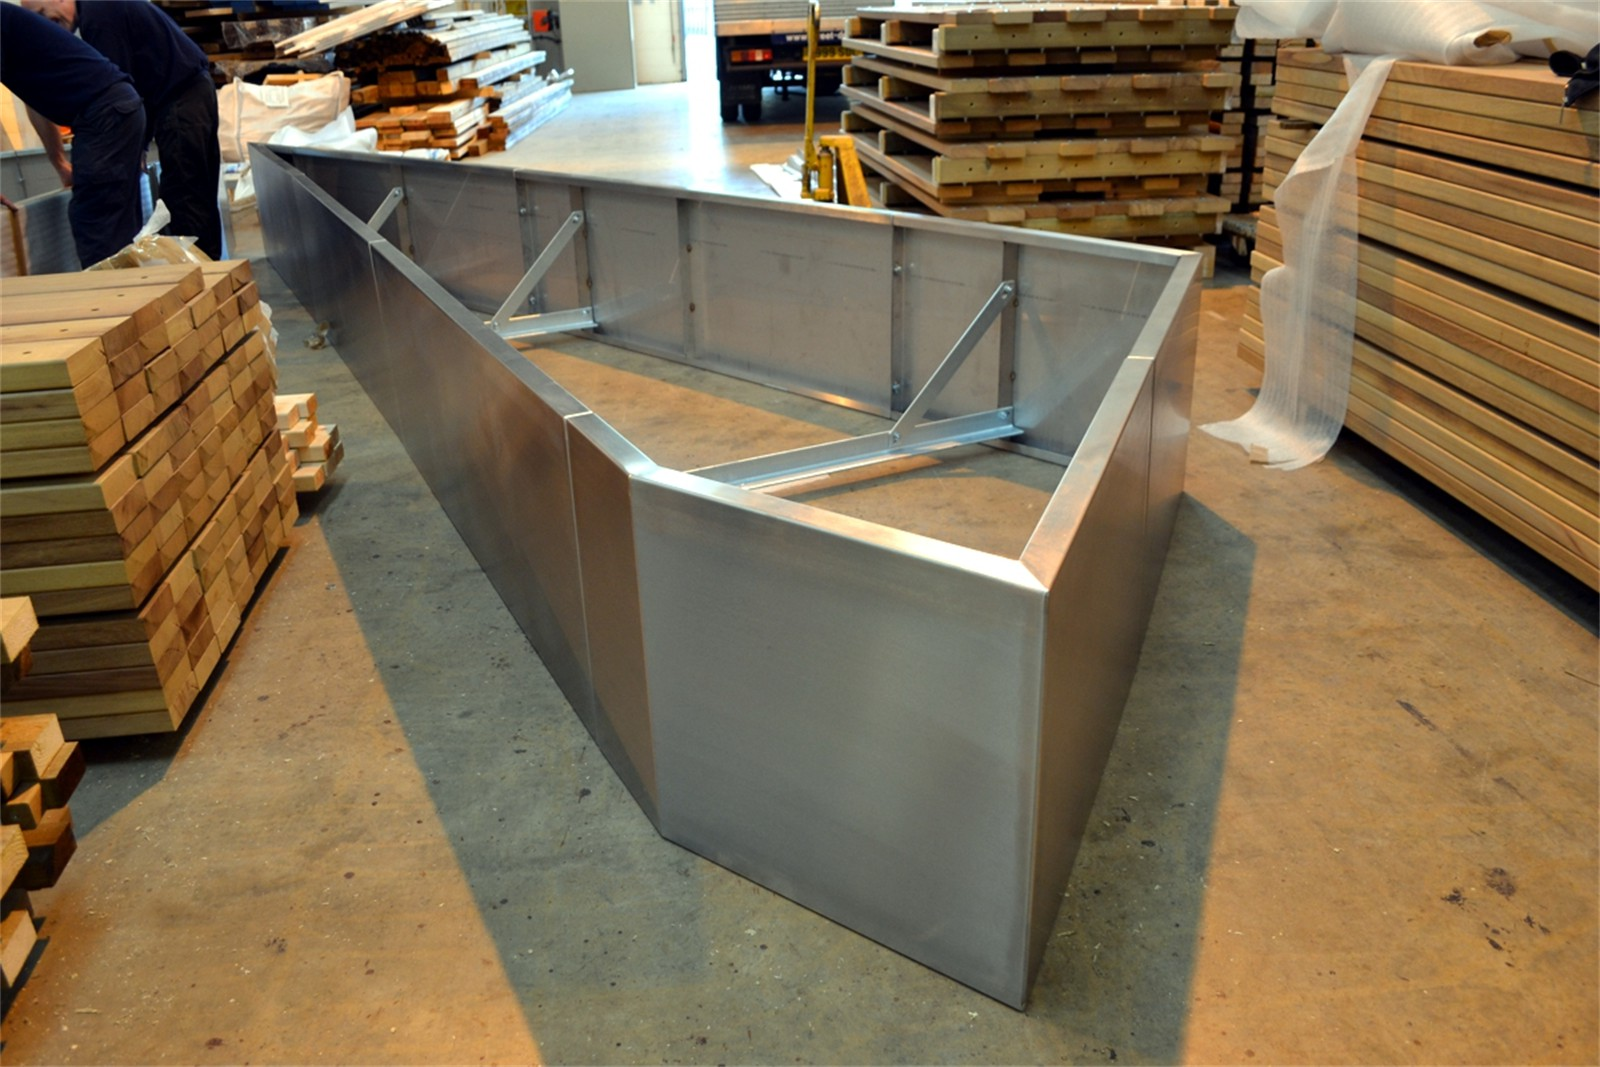 33p10 - Gretton stainless steel planter walling in manufacture